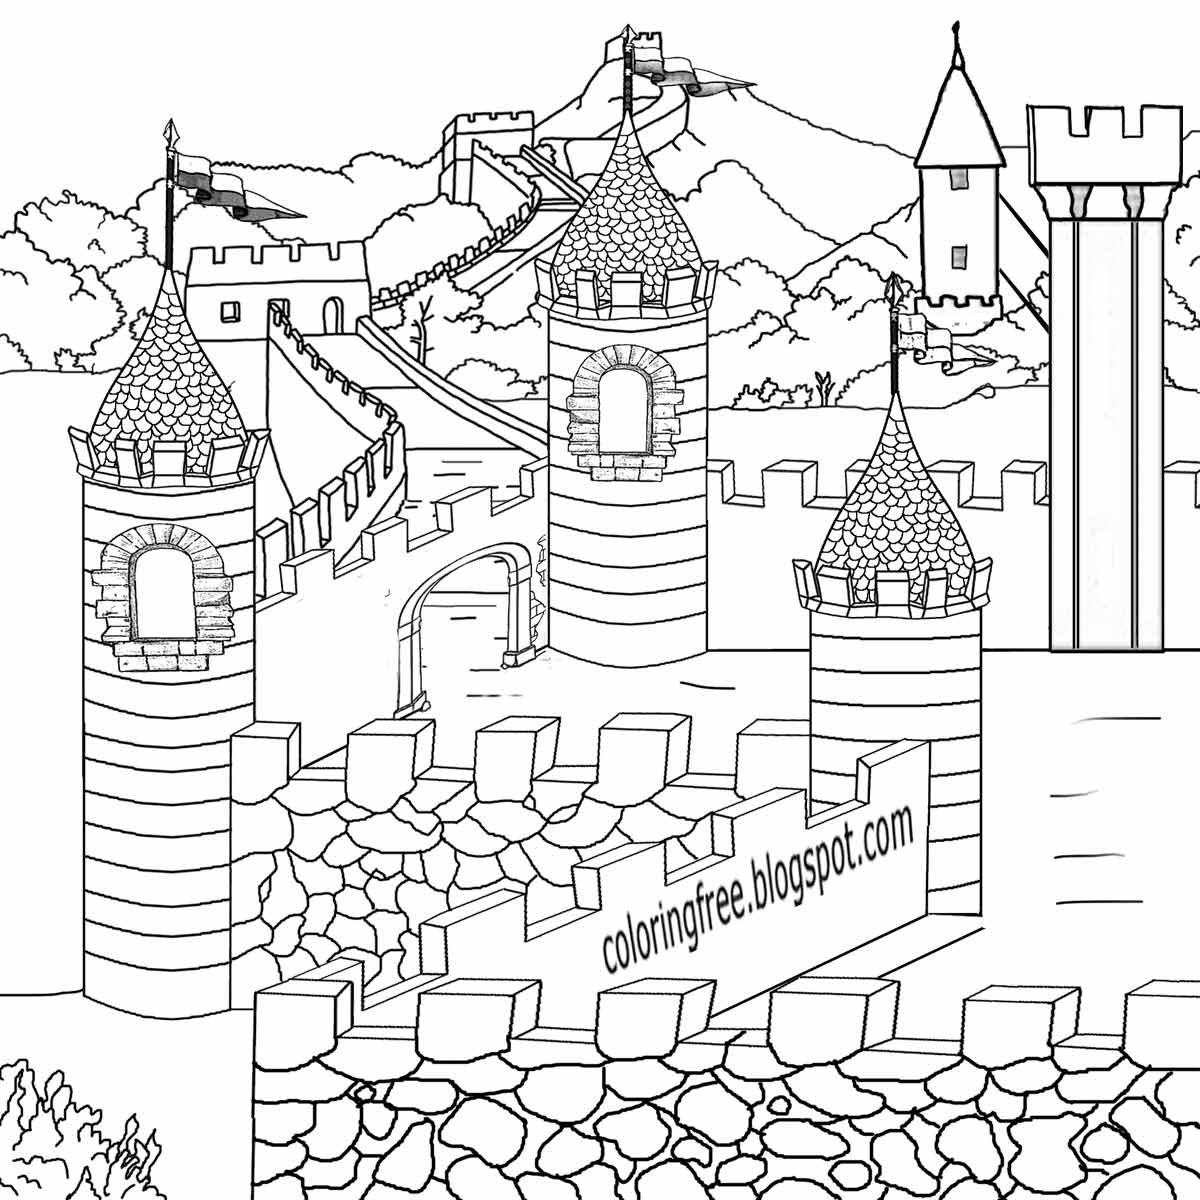 medieval times coloring pages printable - free coloring pages printable pictures to color kids